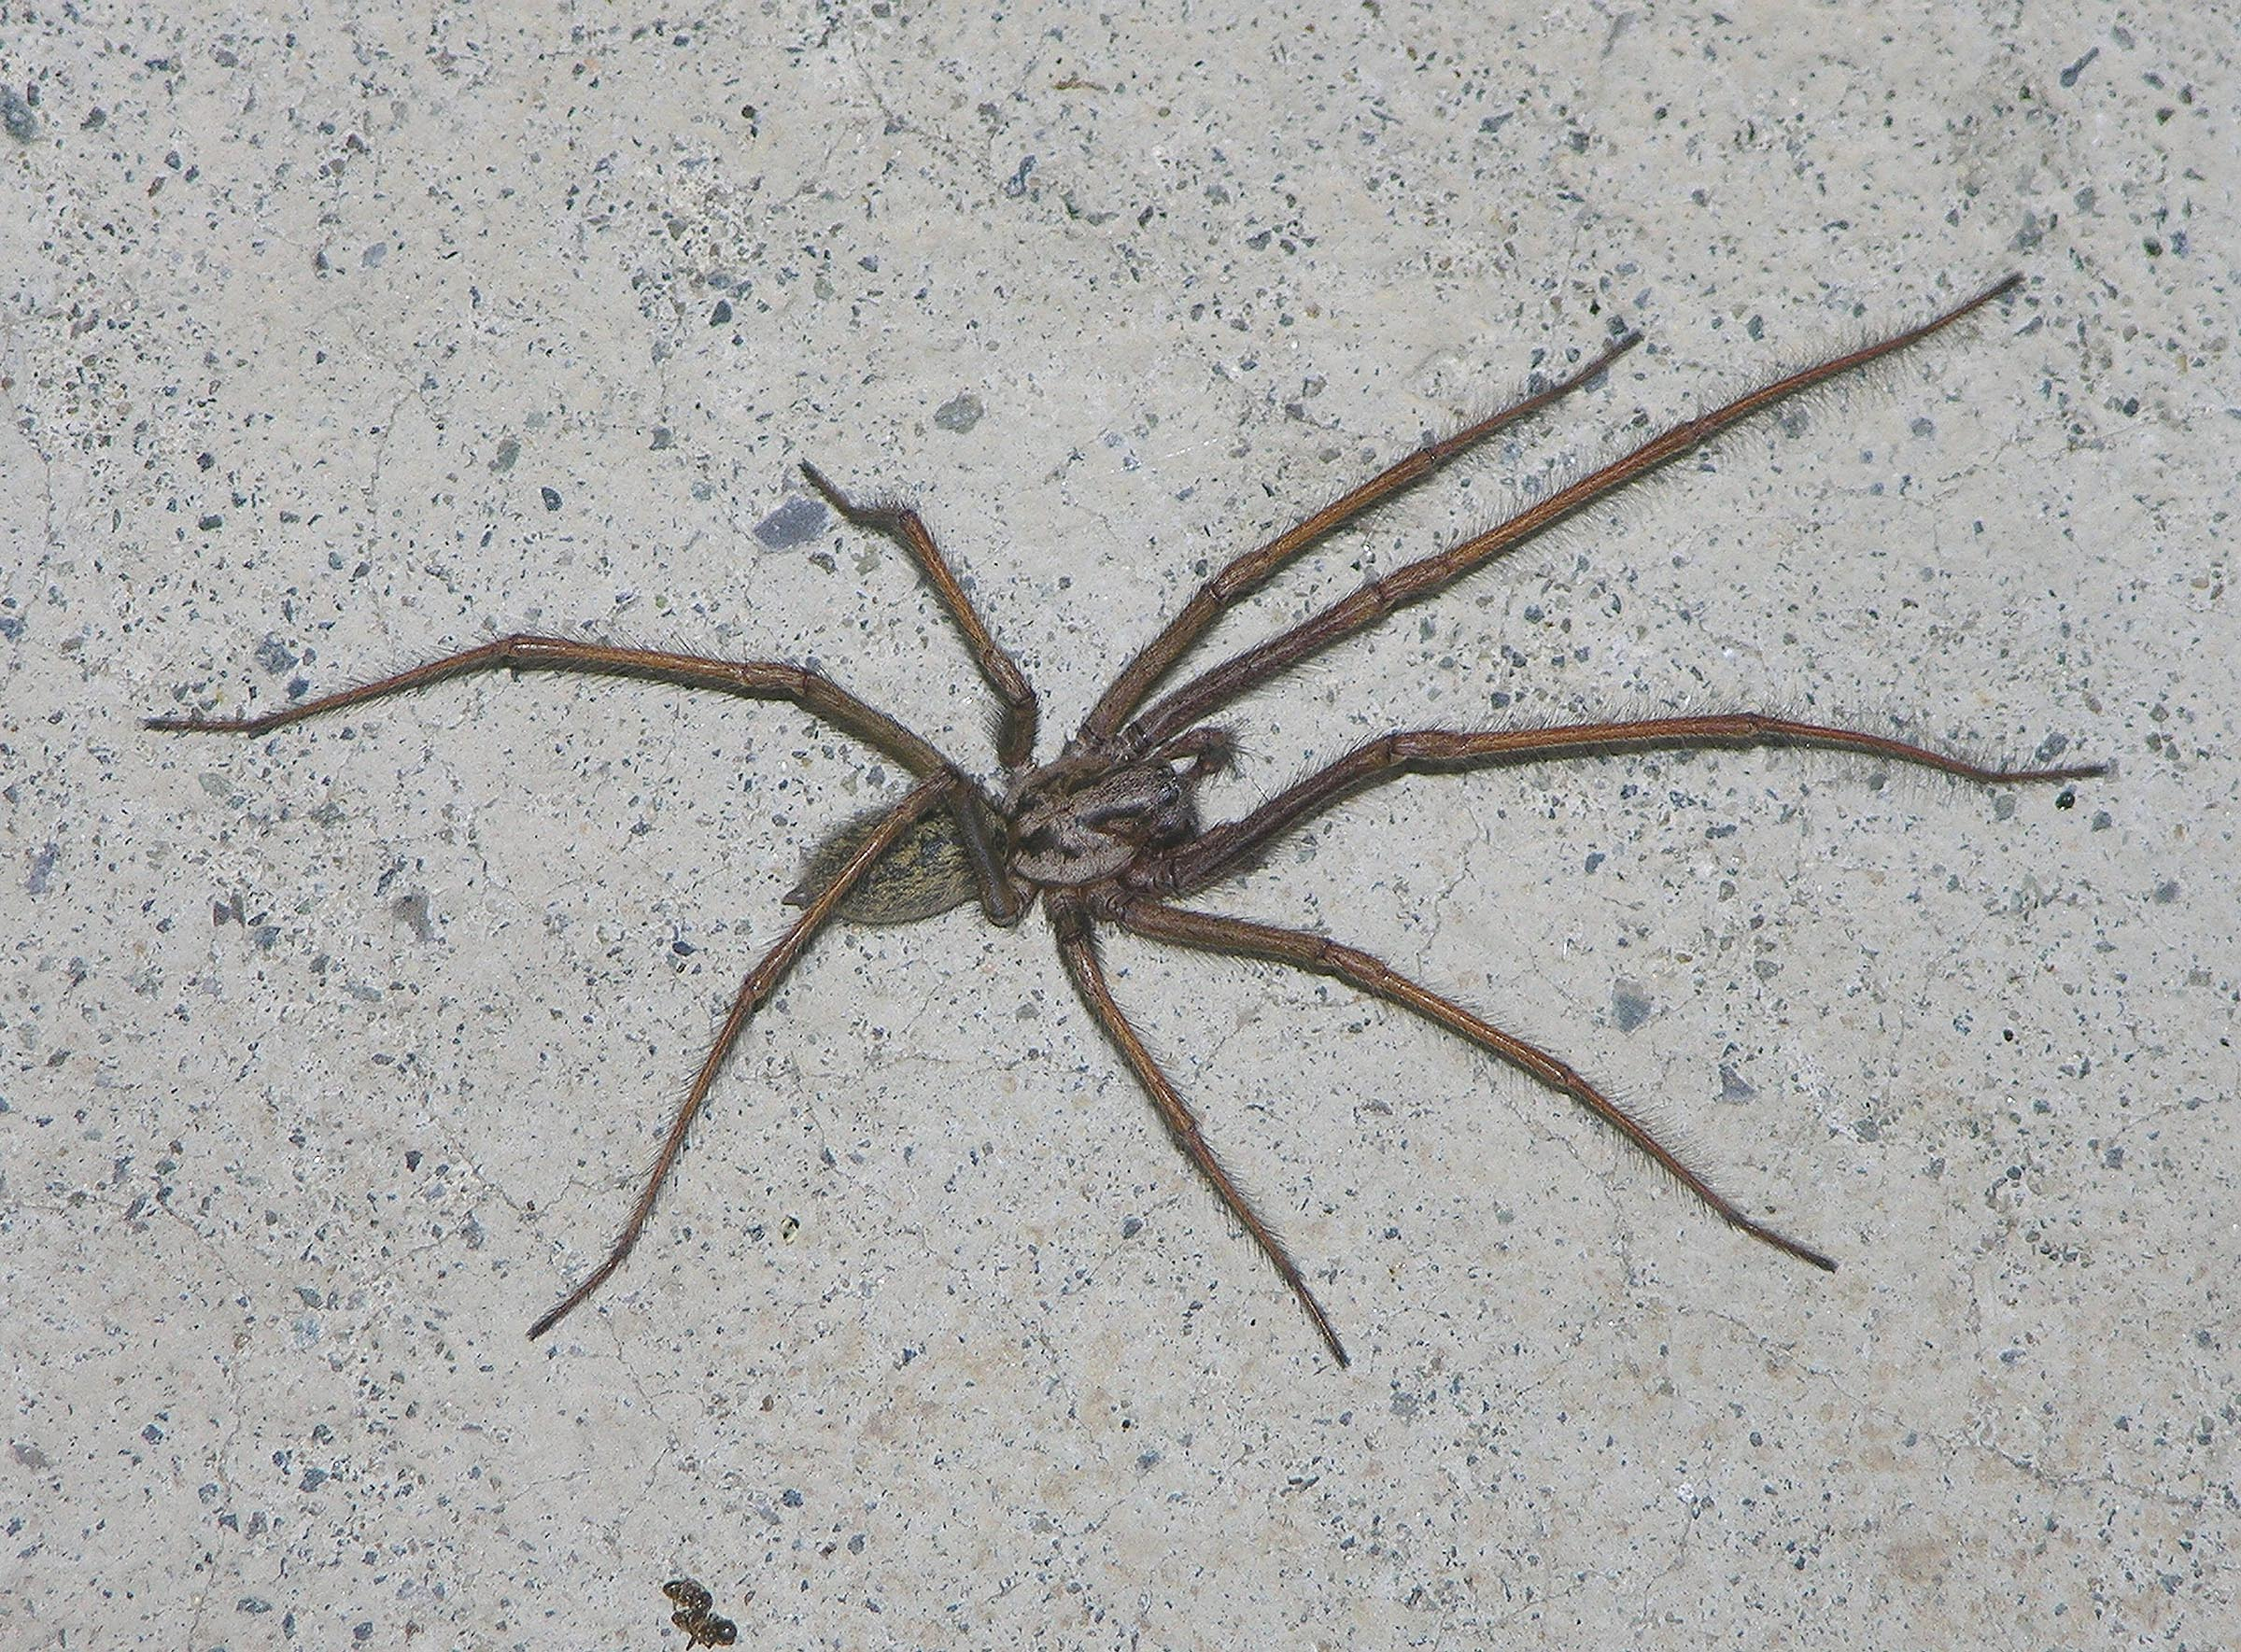 Picture of Eratigena atrica (Giant House Spider) - Male